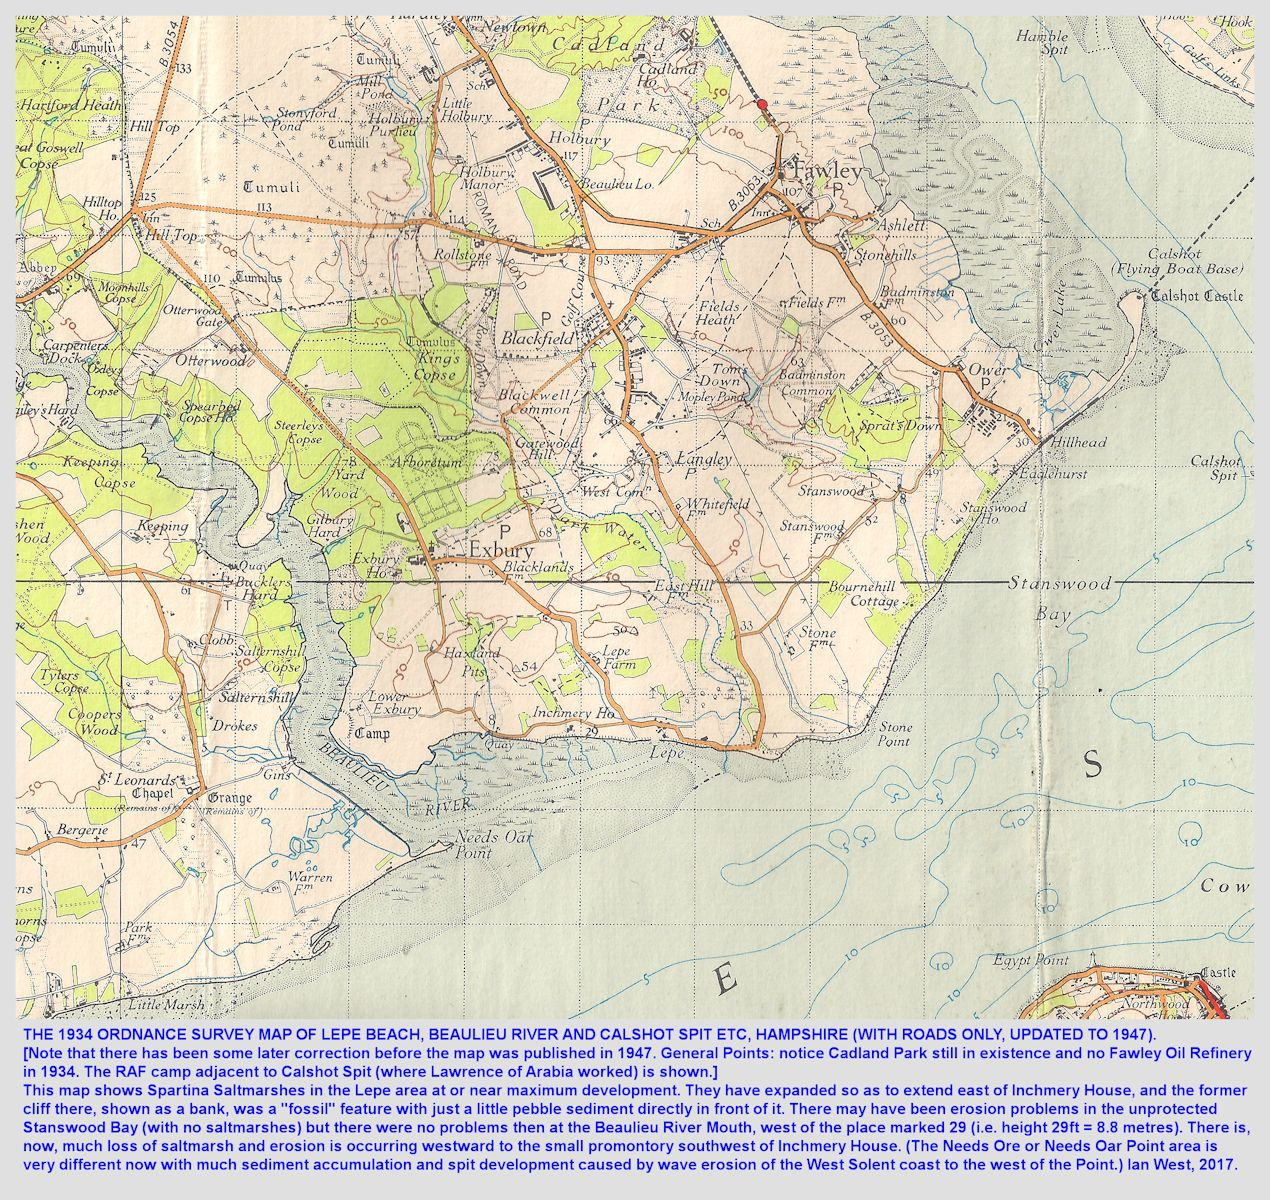 The 1934 topographic map of Lepe Beach and Calshot Spit, Hampshire, with roads updated to 1947